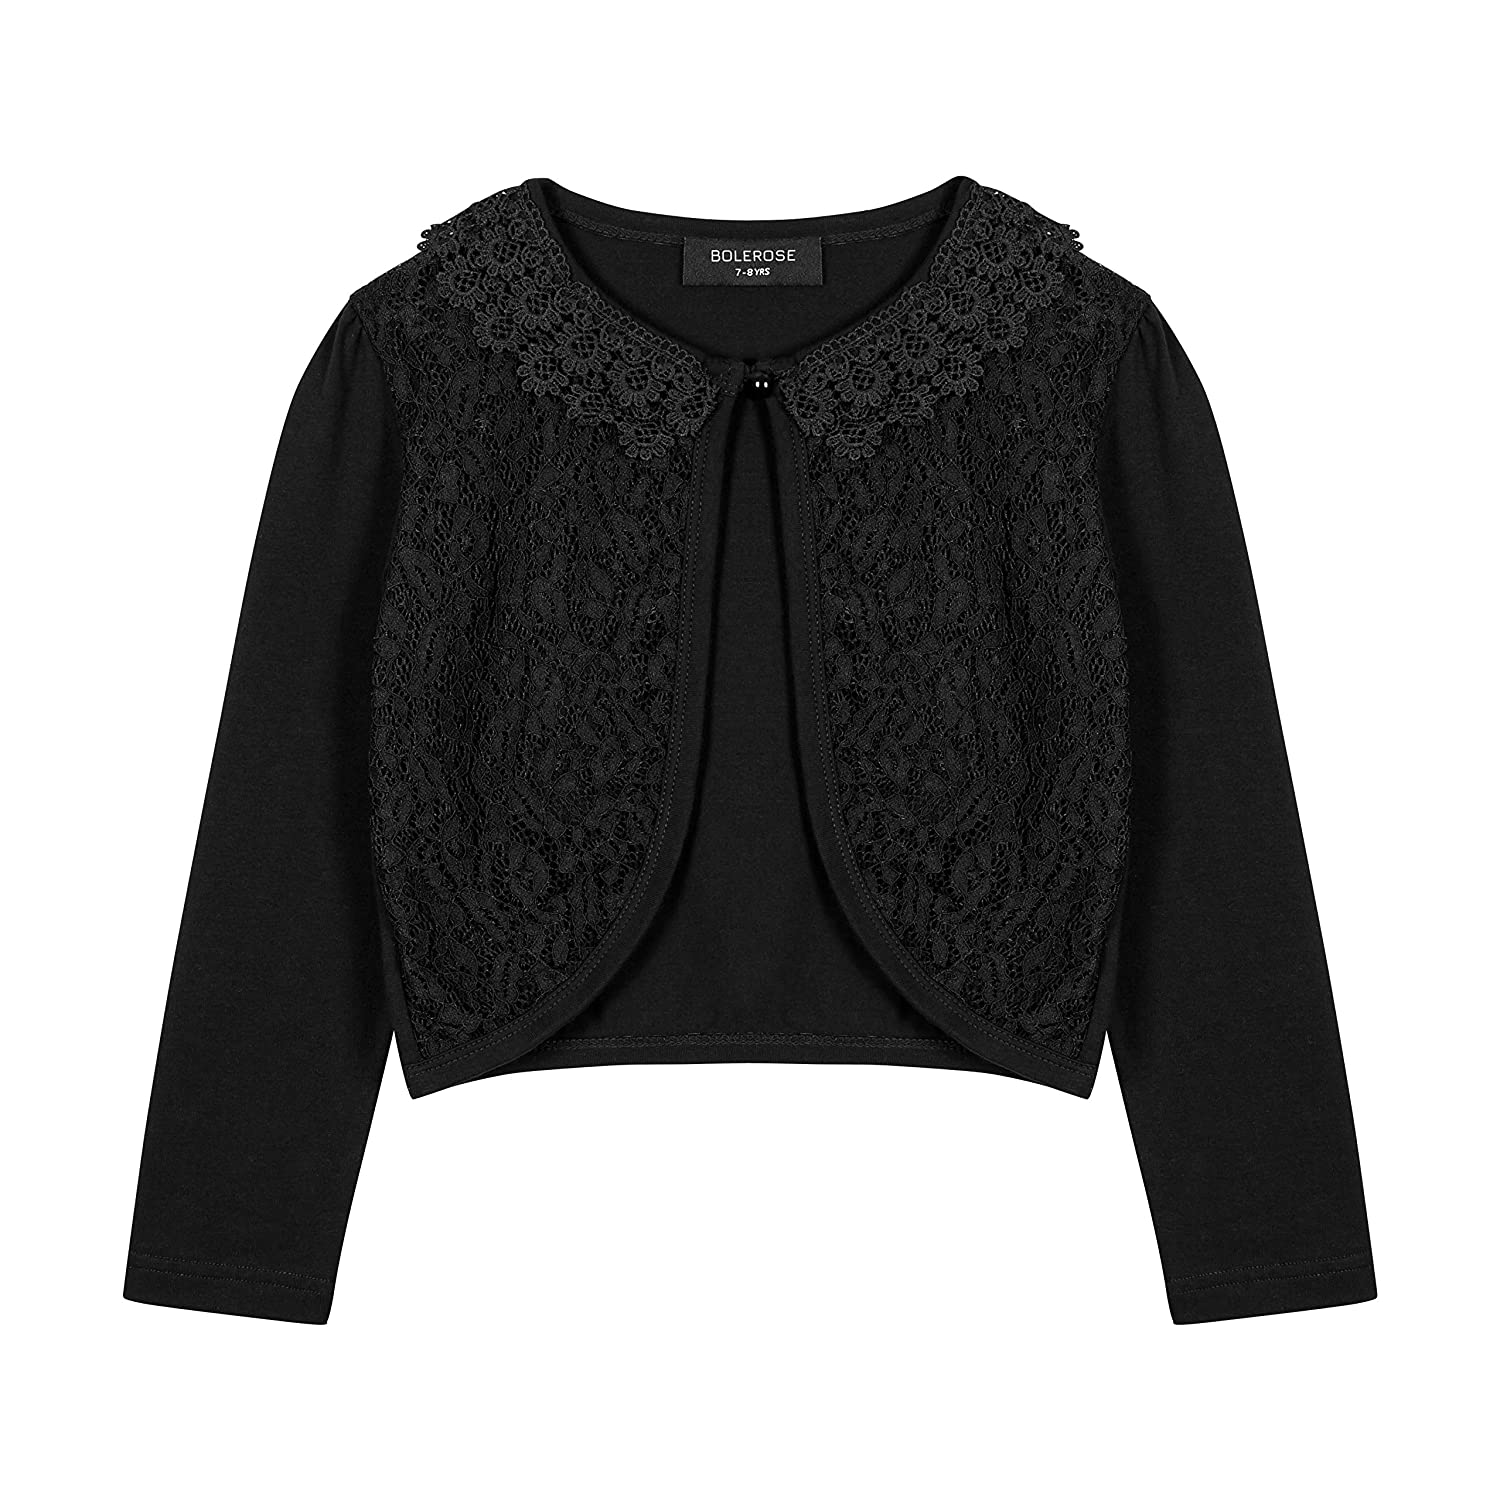 Bolerose Girls Long Sleeve Floral Lace Bolero Cardigan Kids Shrug Cover Up